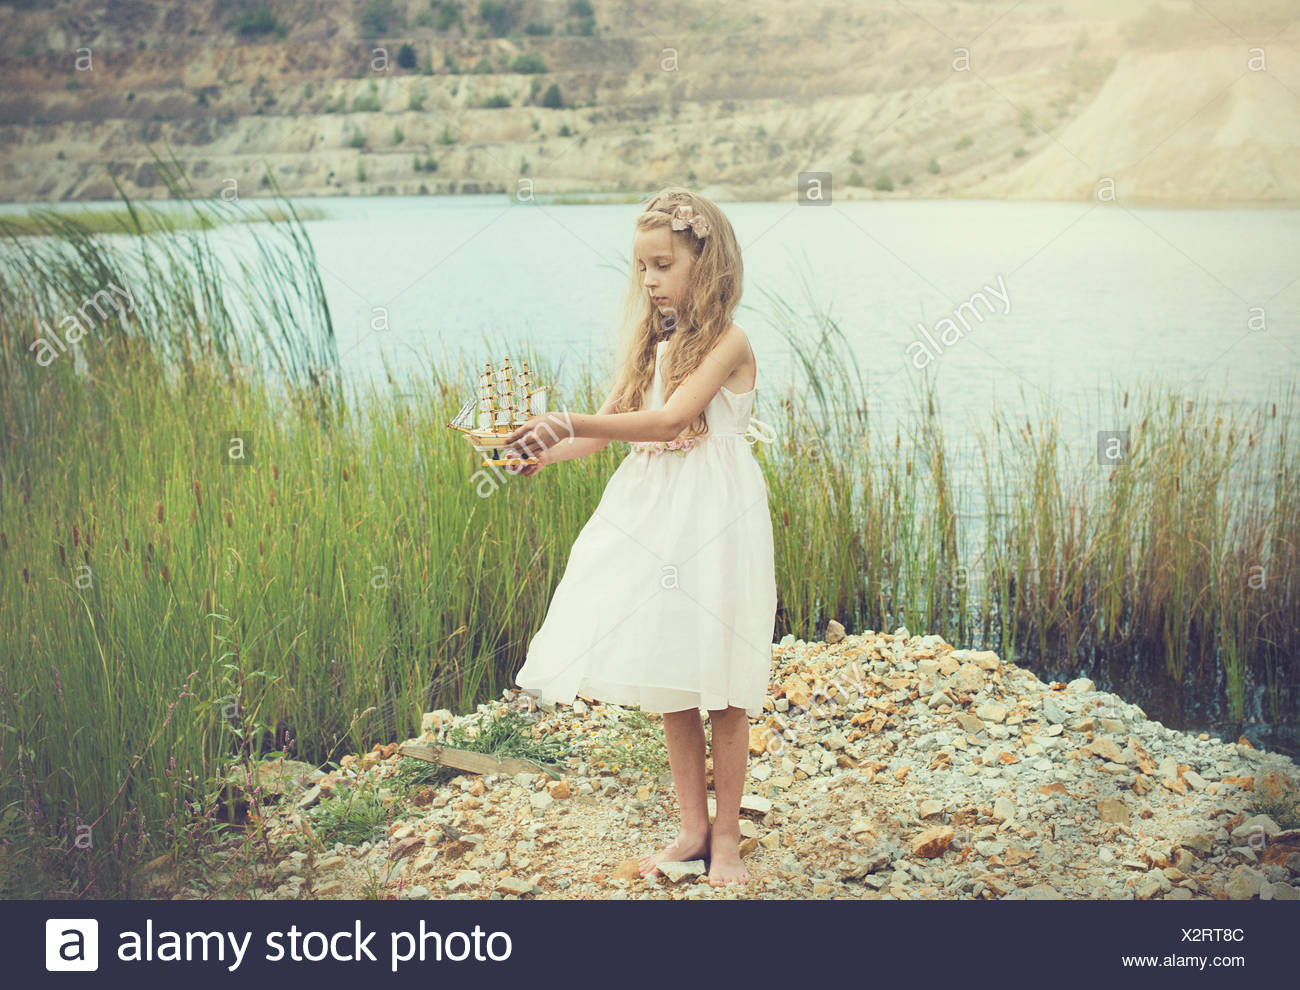 Girl standing by a lake holding a model of a boat - Stock Image